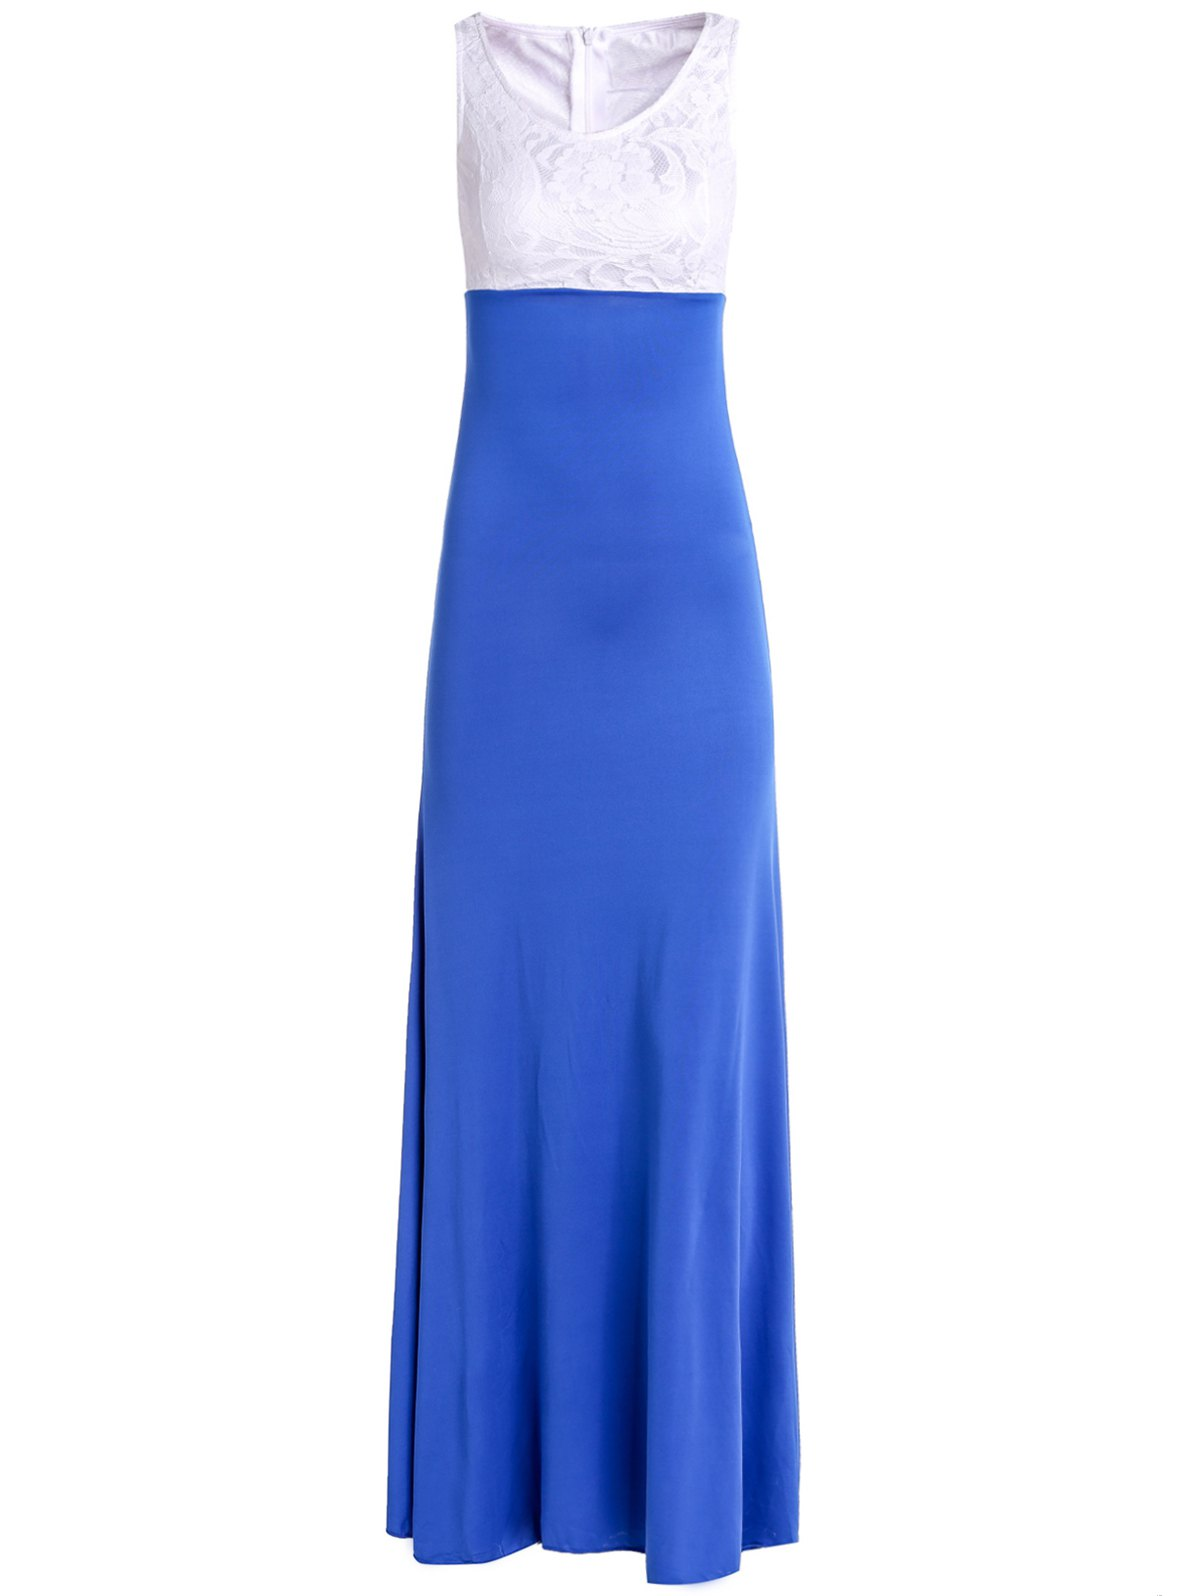 Elegant Scoop Neck Sleeveless Lace Spliced Ruched Maxi Dress For Women - M BLUE